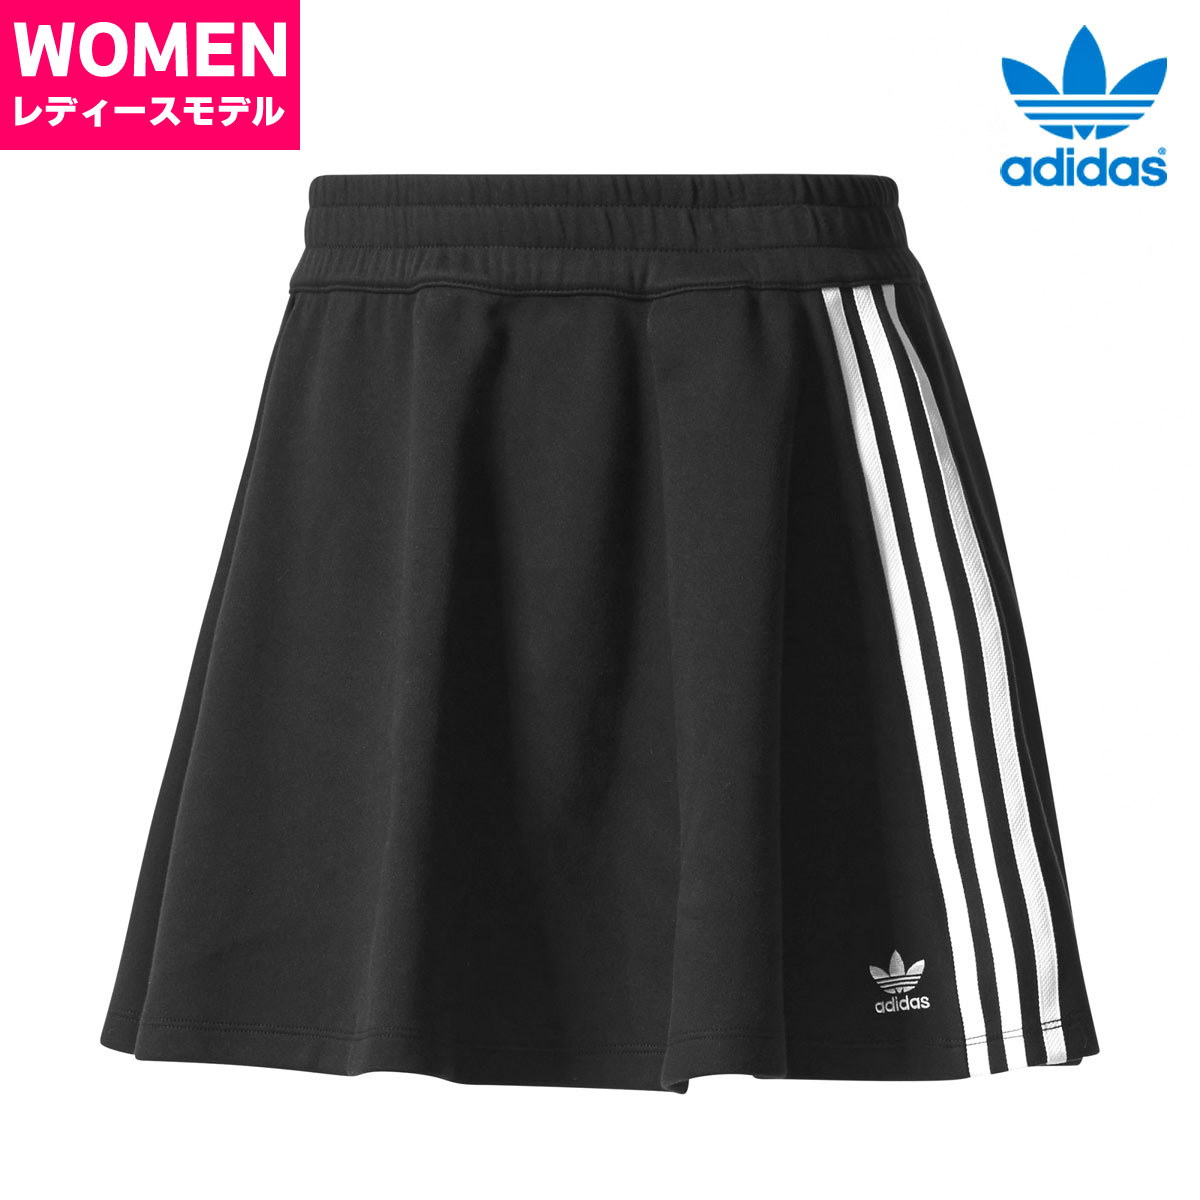 check out b9392 c4765 adidas Originals 3 STRIPES SKIRT (Adidas 3 stripe skirt) (black) 17FW-I